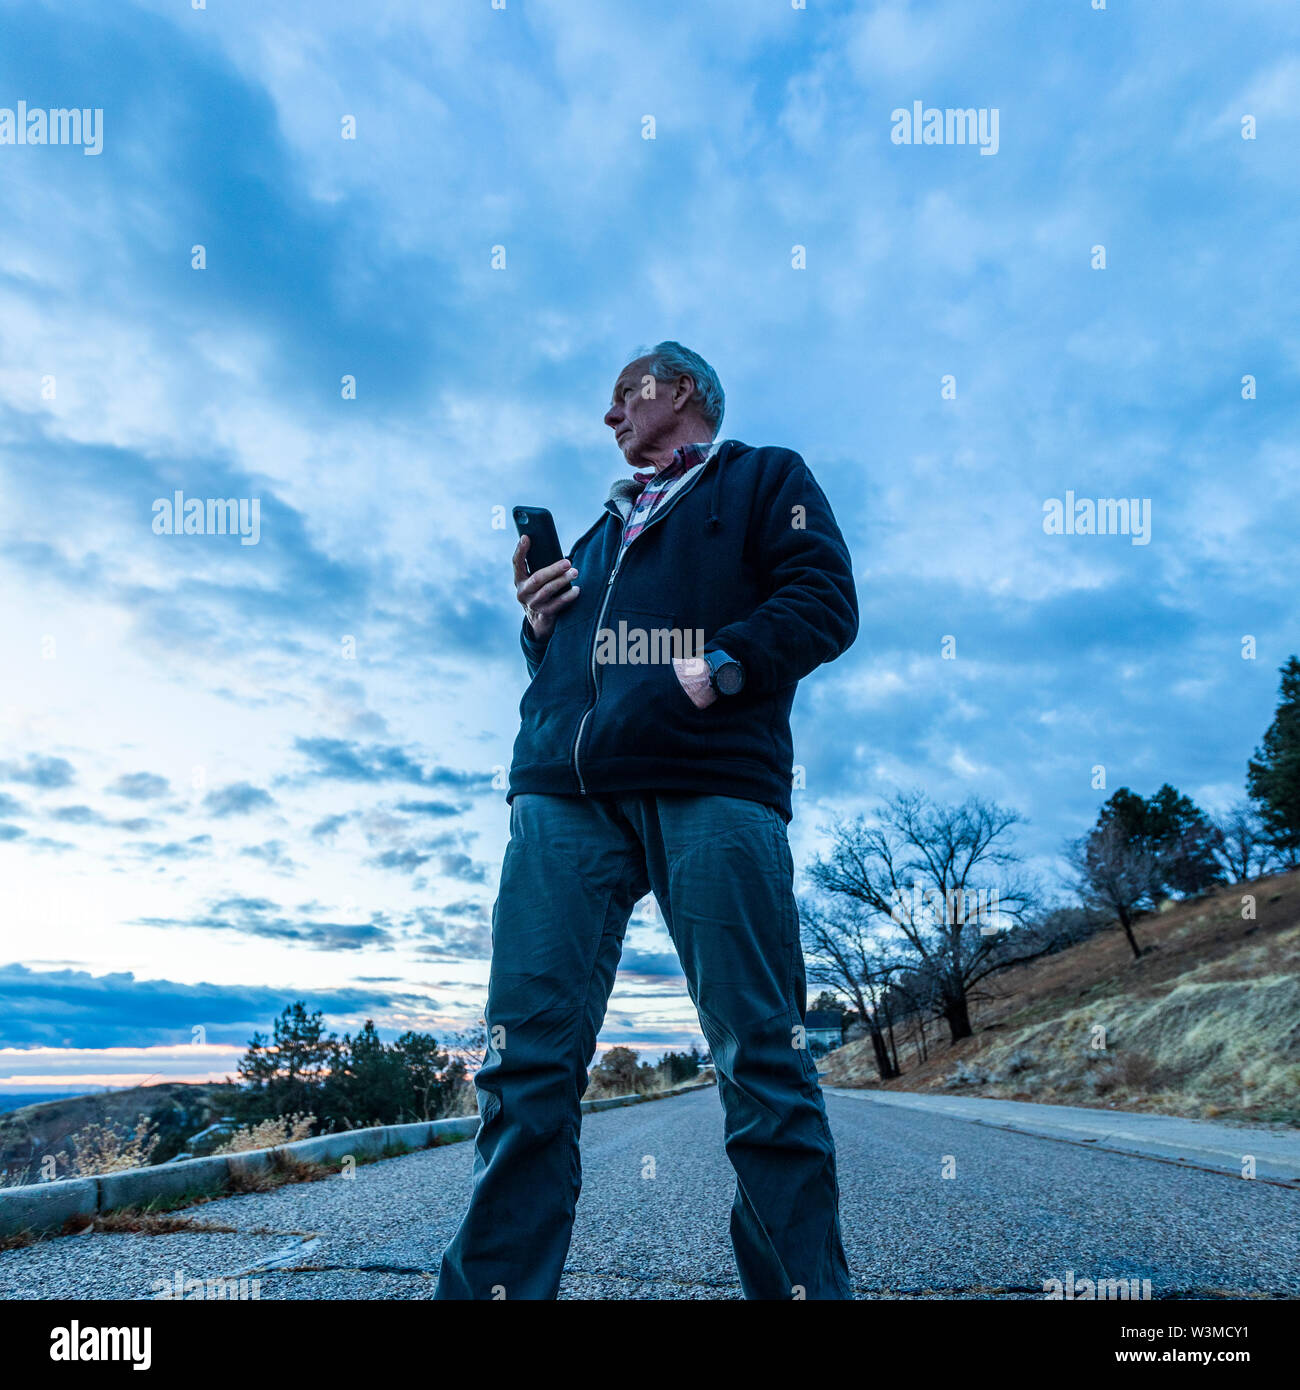 Low angle view of man holding smart phone on road - Stock Image